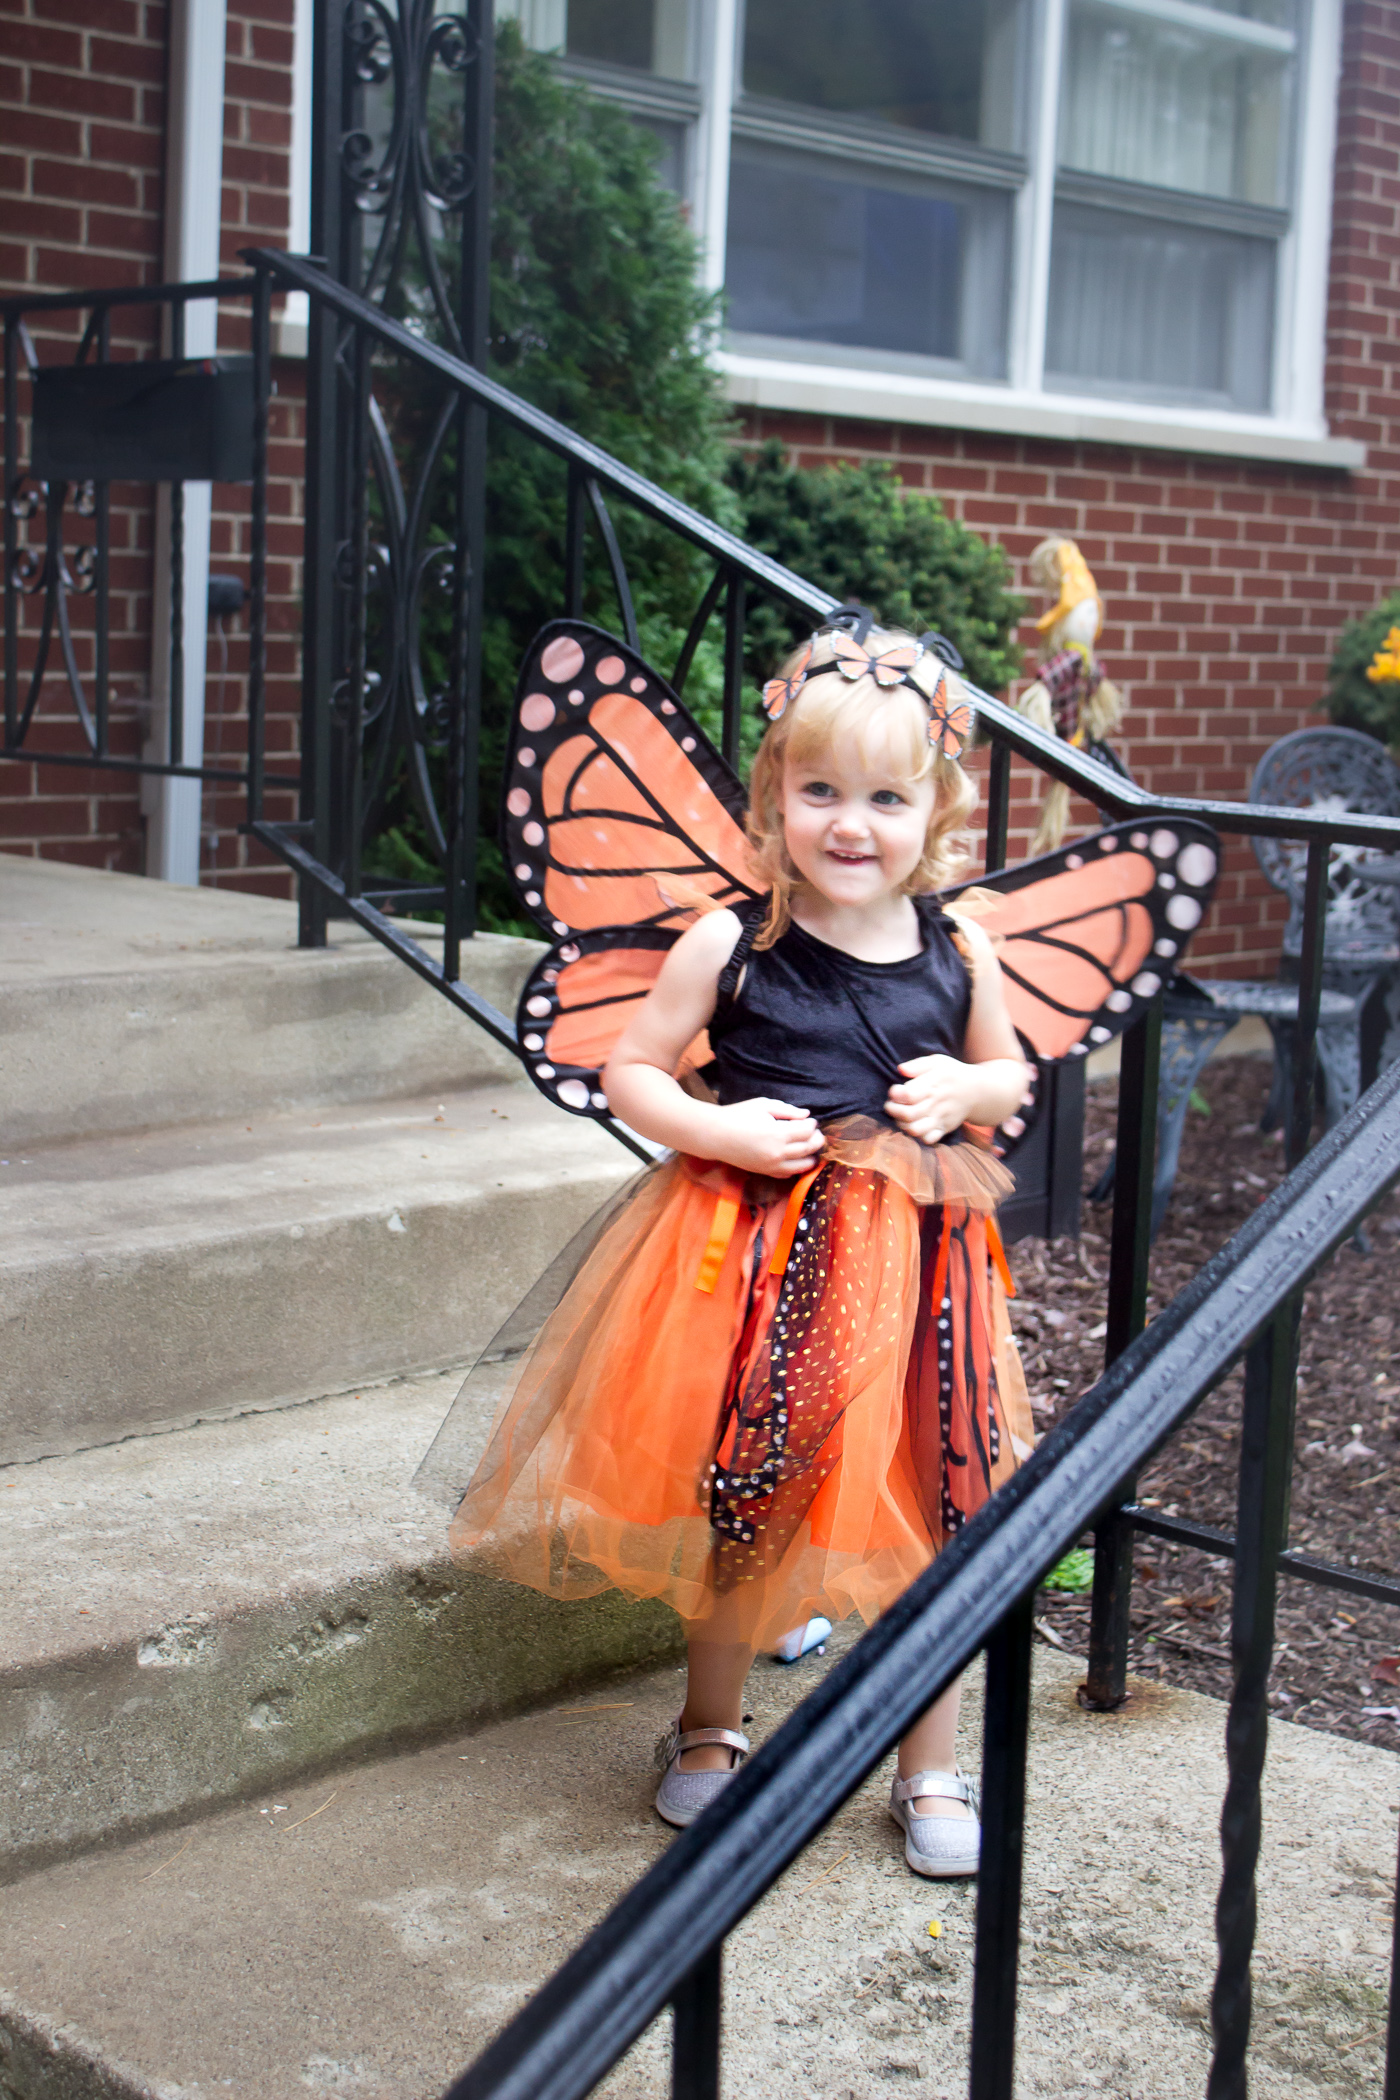 Hope you have a Happy Halloween weekend! I've been looking forward to this weekend for quite some time now because well, kids in costumes are just the cutest! I couldn't wait to see Taylor in this butterfly costume from Potterybarn Kids! I know my dad would have loved it too.